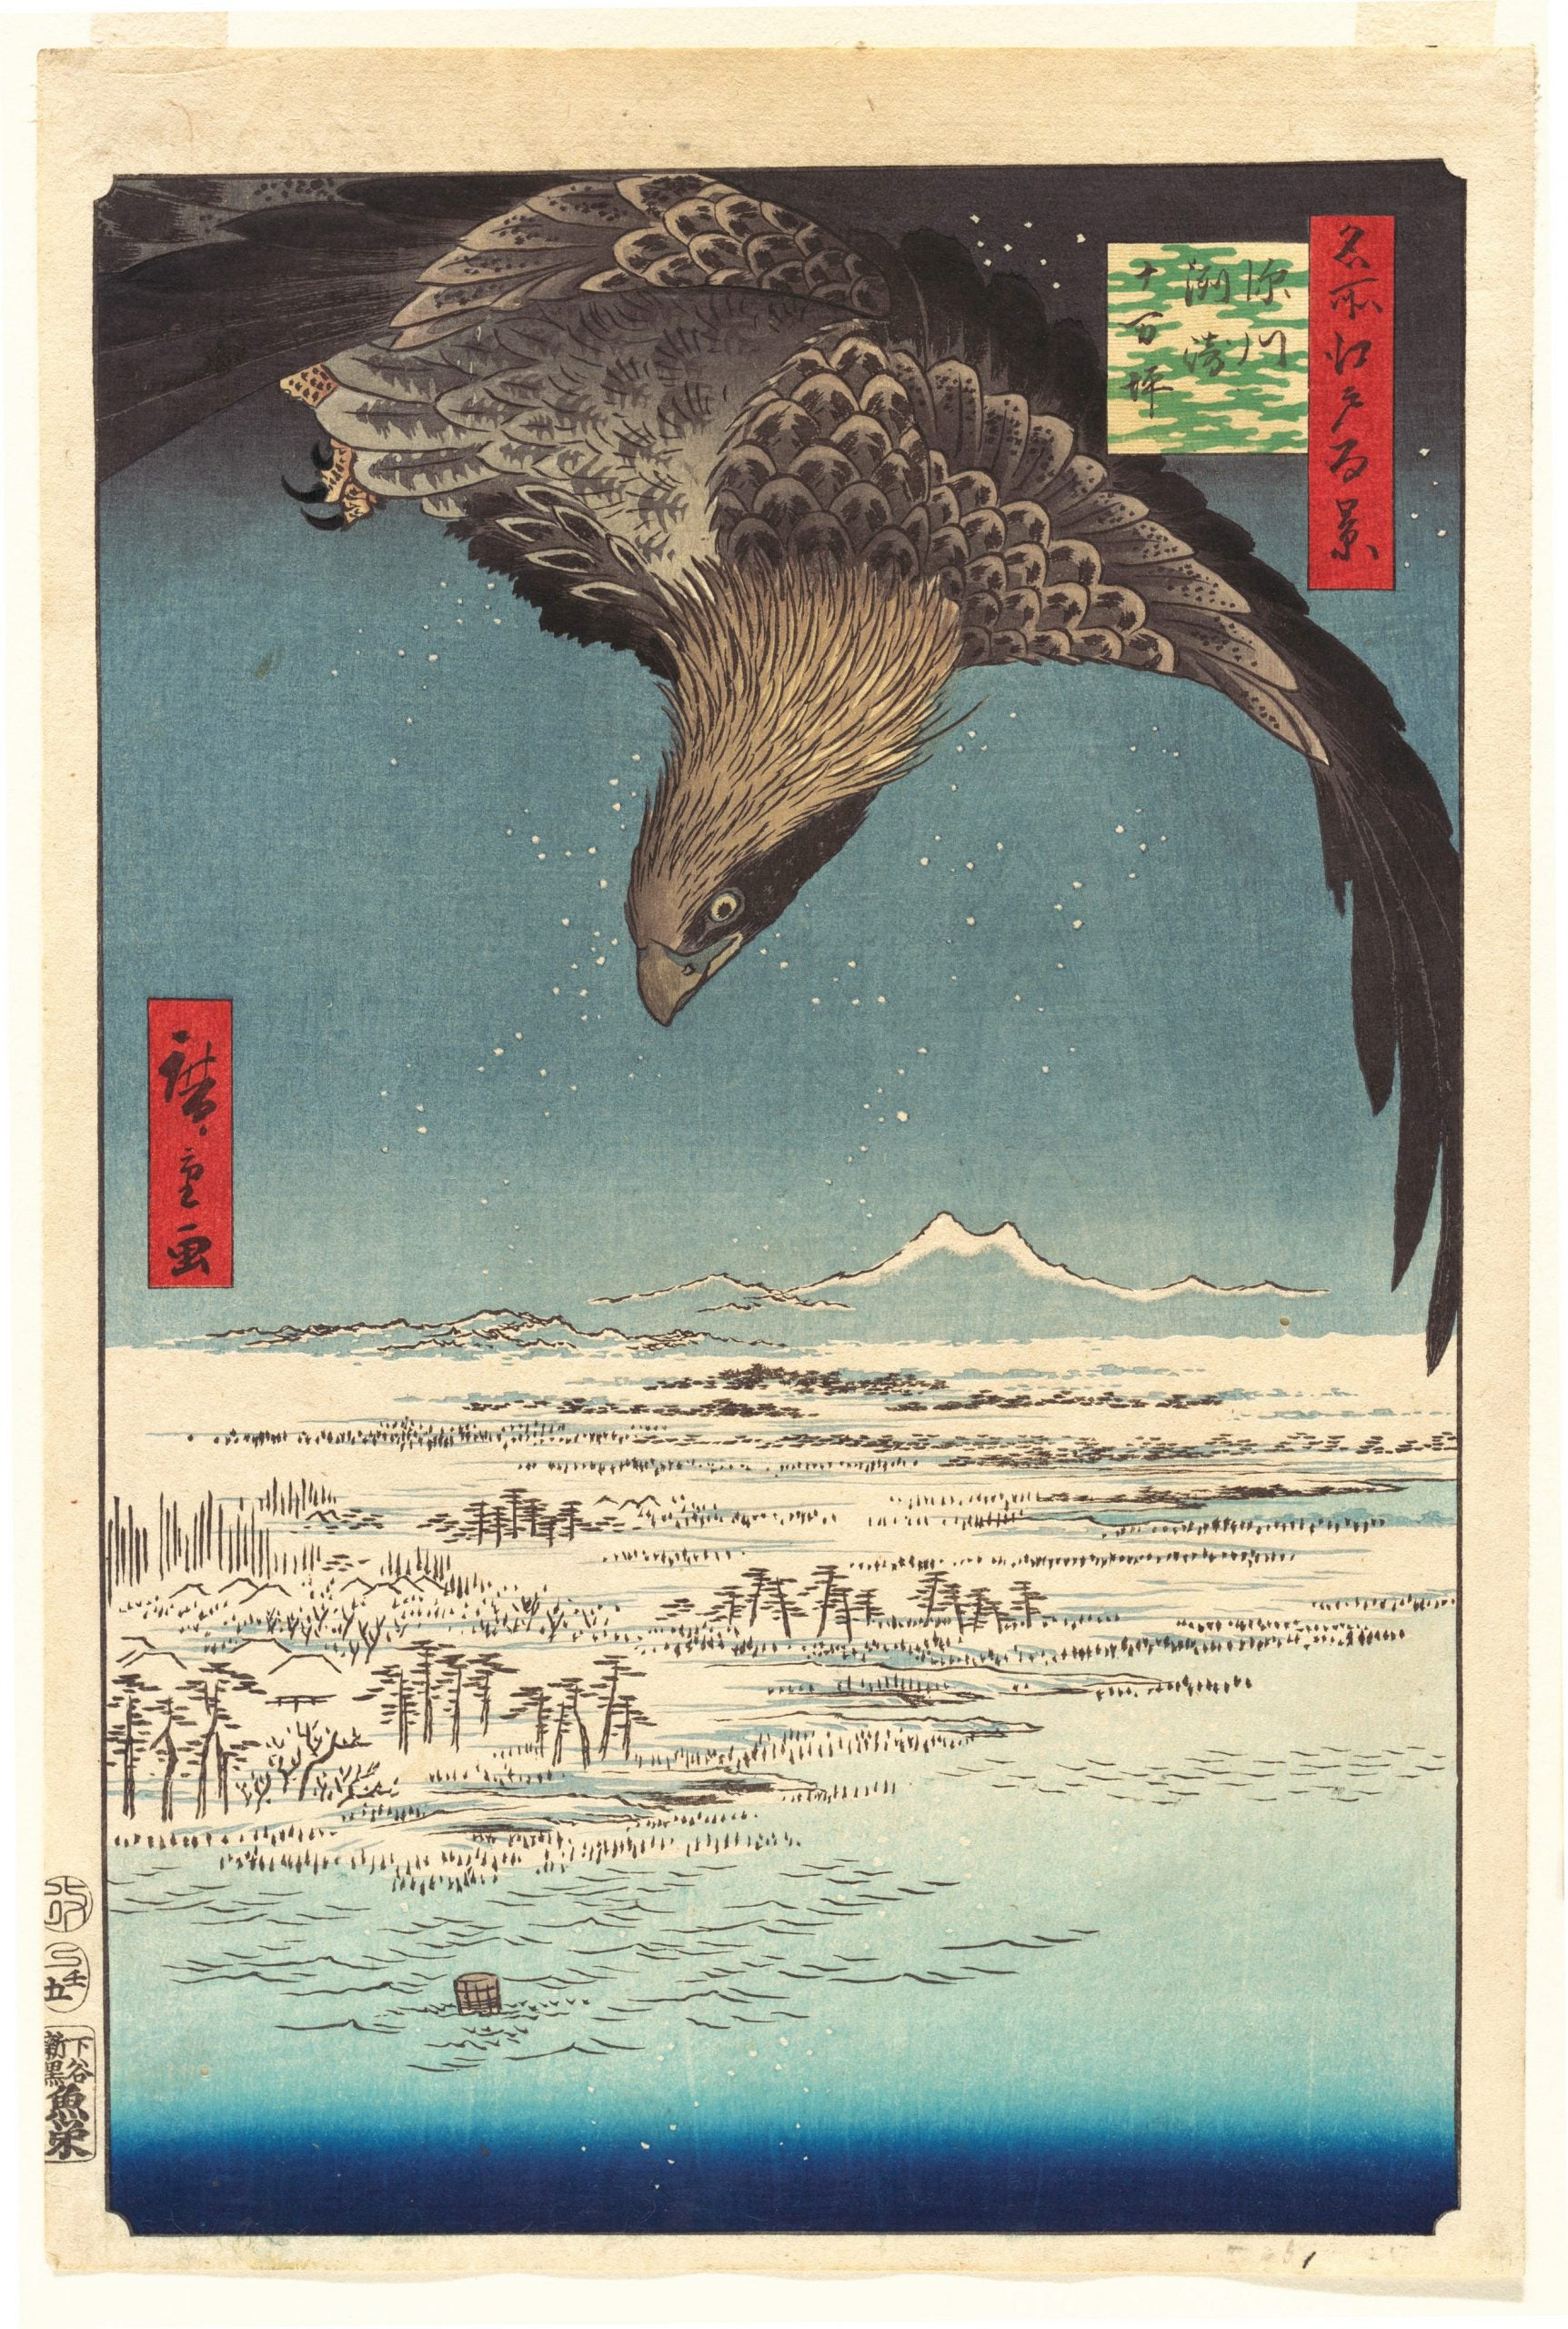 The greats outdoors: how Hiroshige's woodcuts changed art